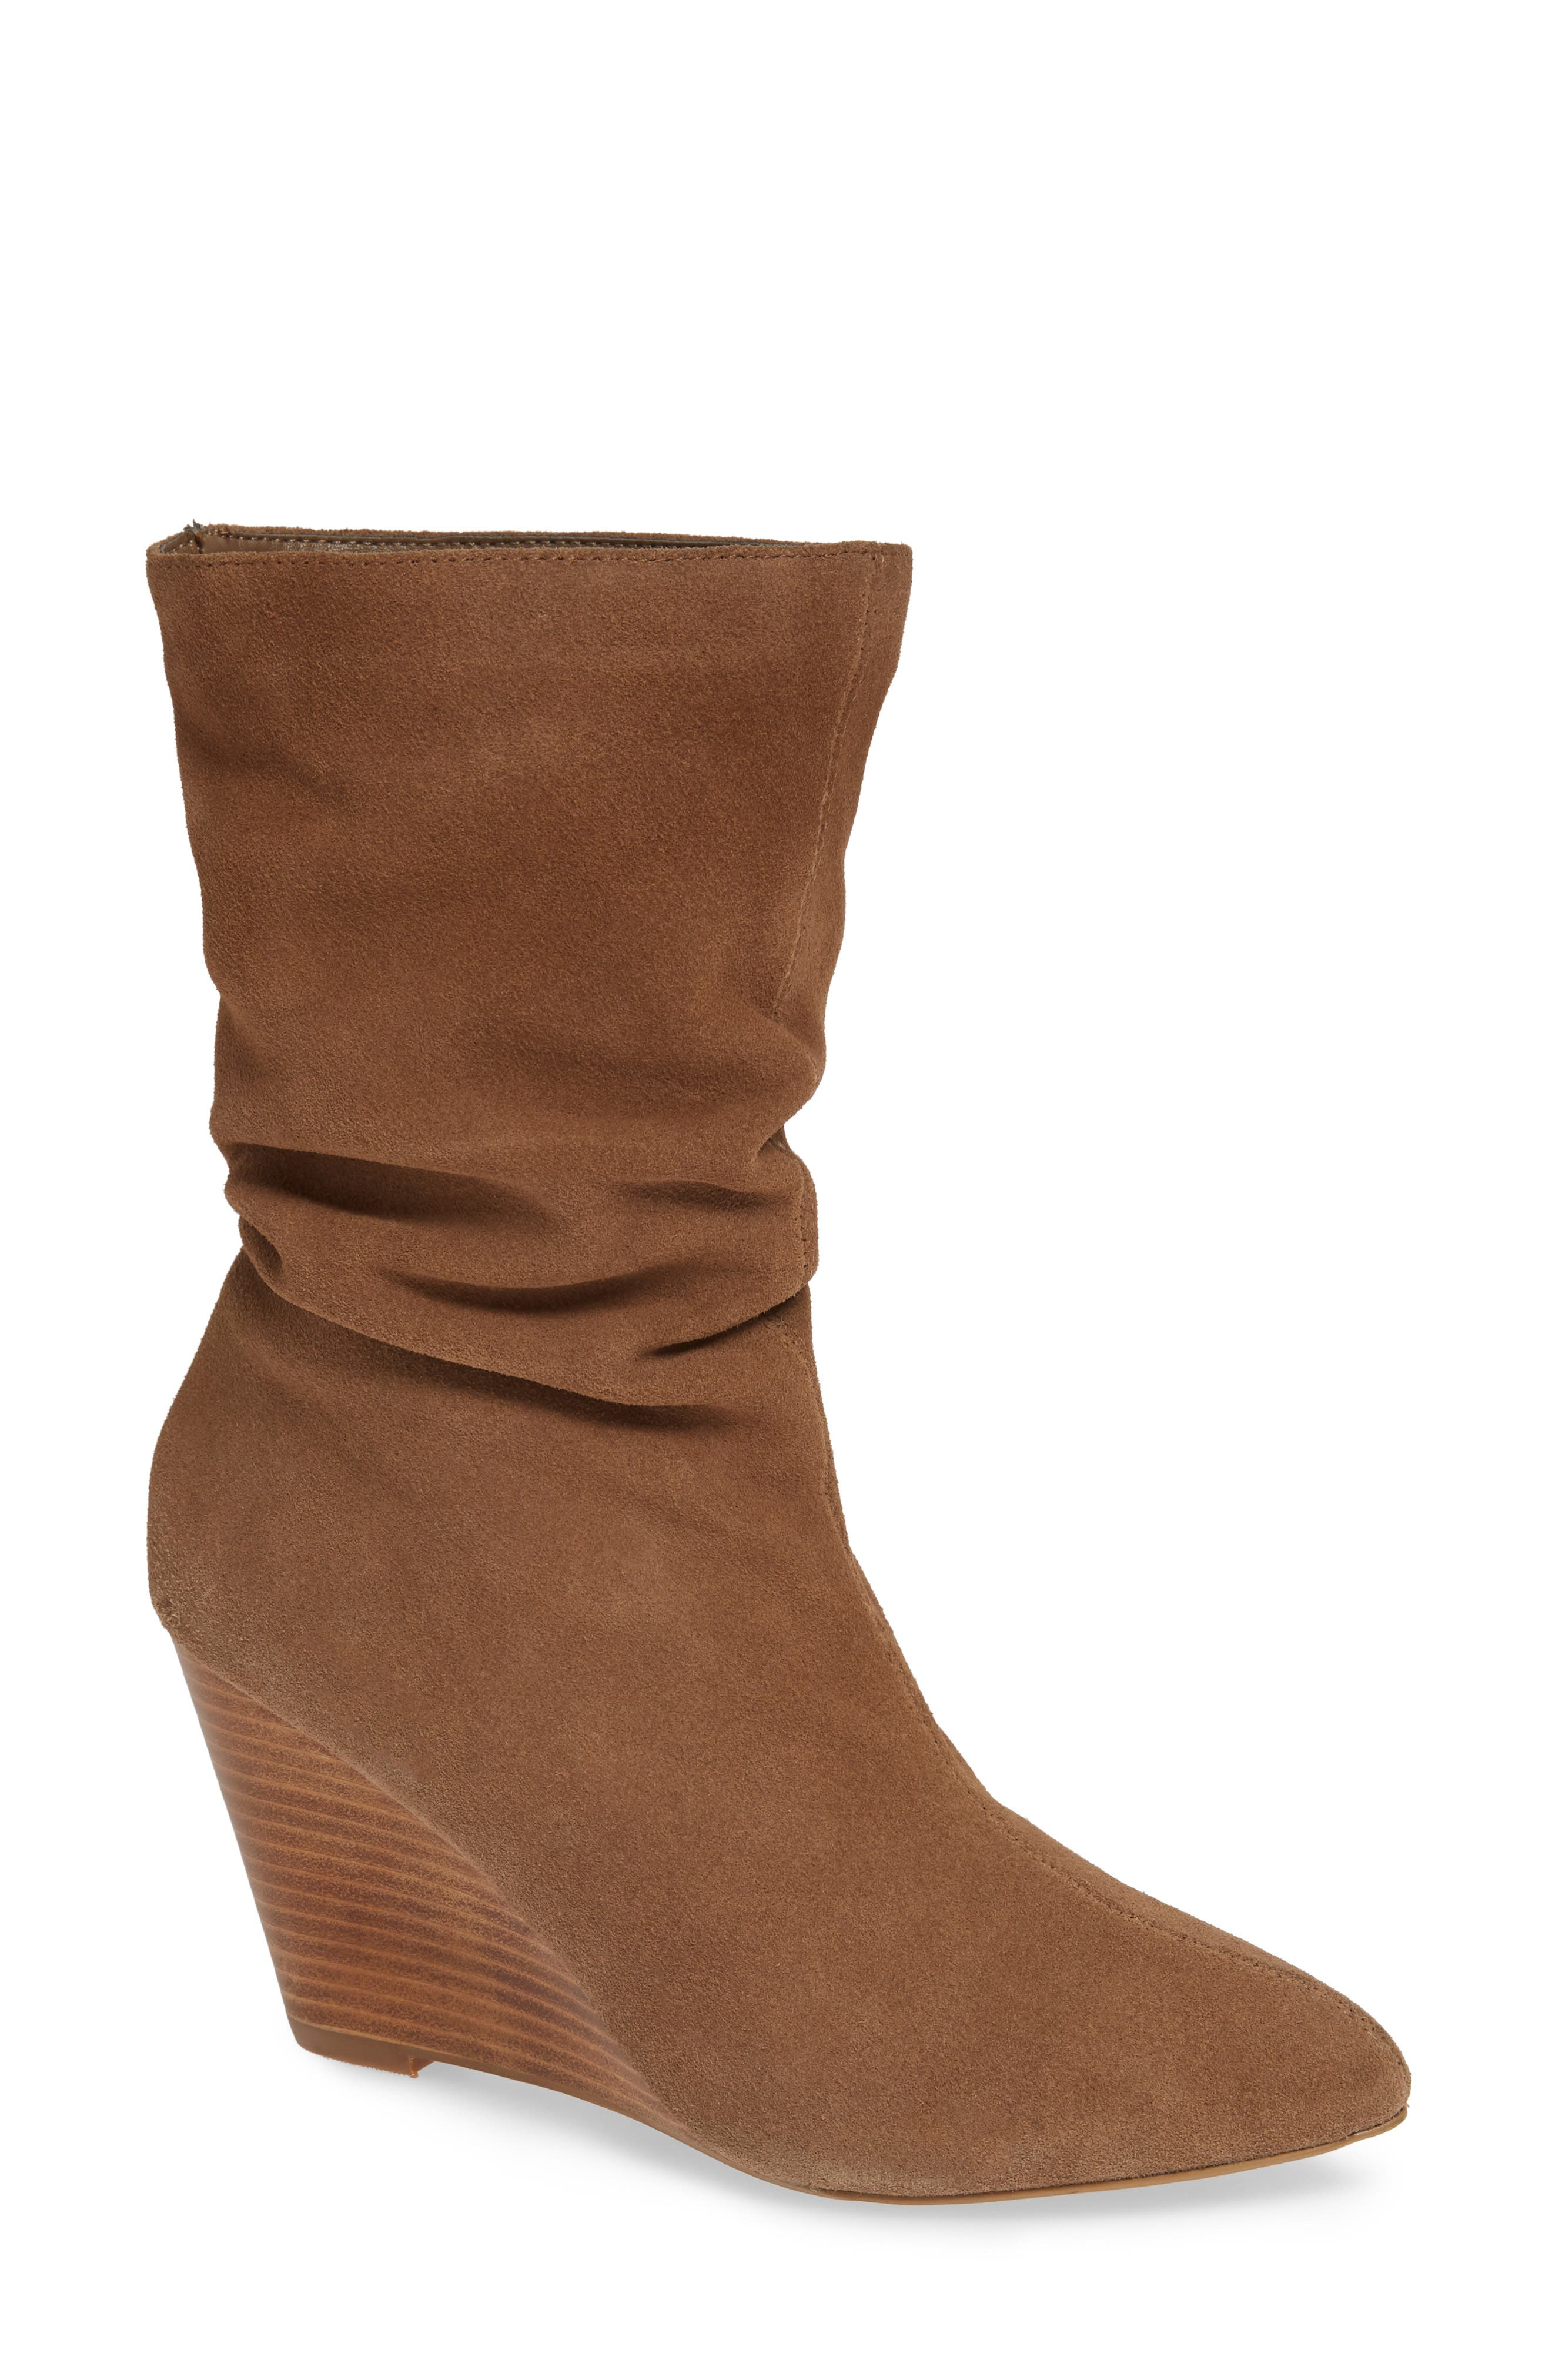 CHARLES BY CHARLES DAVID Edell Slouchy Wedge Boot, Main, color, TAUPE SUEDE